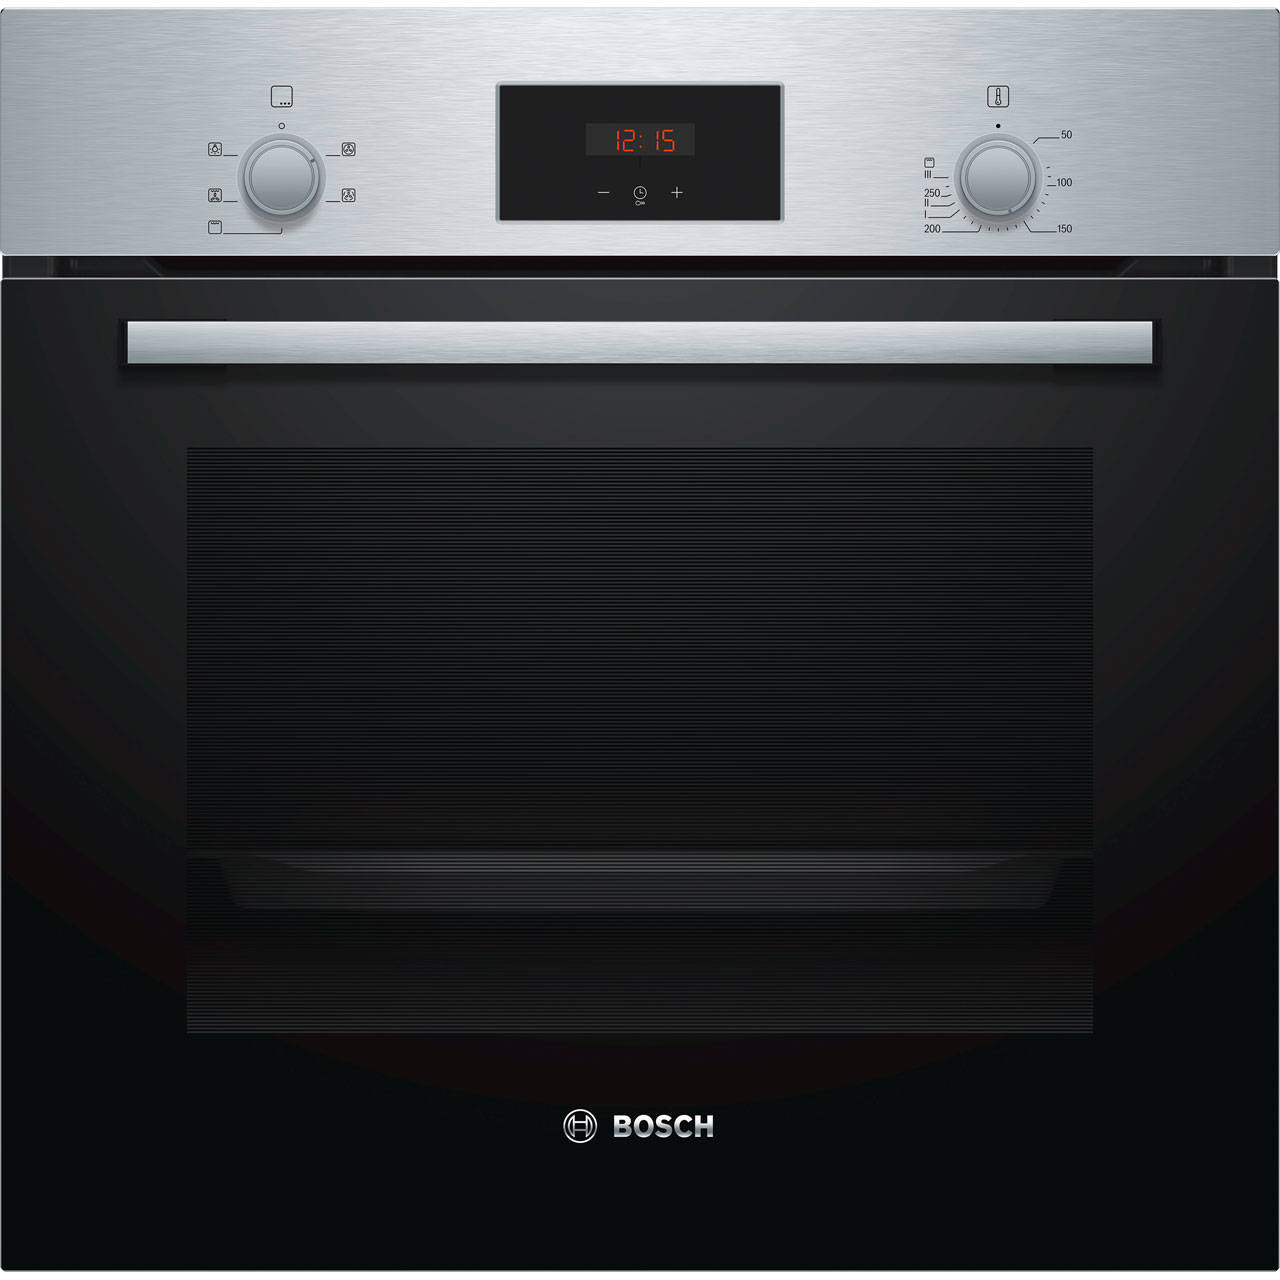 Bosch Hhf113br0b Built In Single Oven 66 Litres Gerald Giles